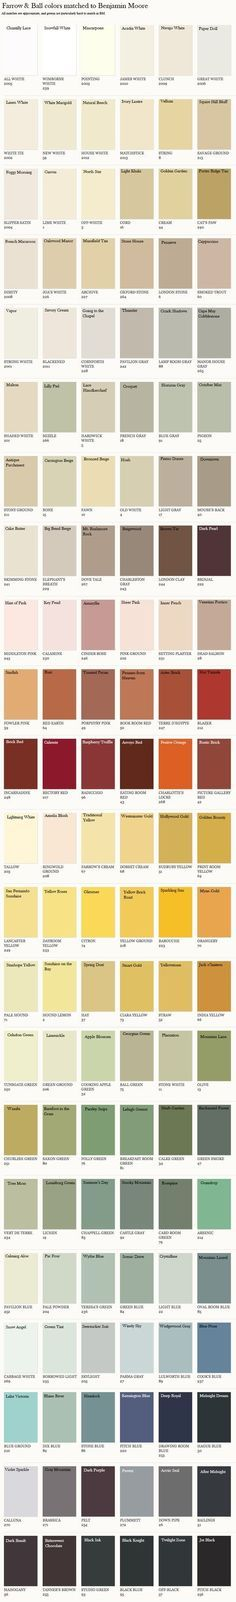 Farrow & Ball paint colors matched to Benjamin Moore colors. Everything is approximate, and F colors will have a much greater depth of color, but it gives a limited palette and starting off point. by cherie